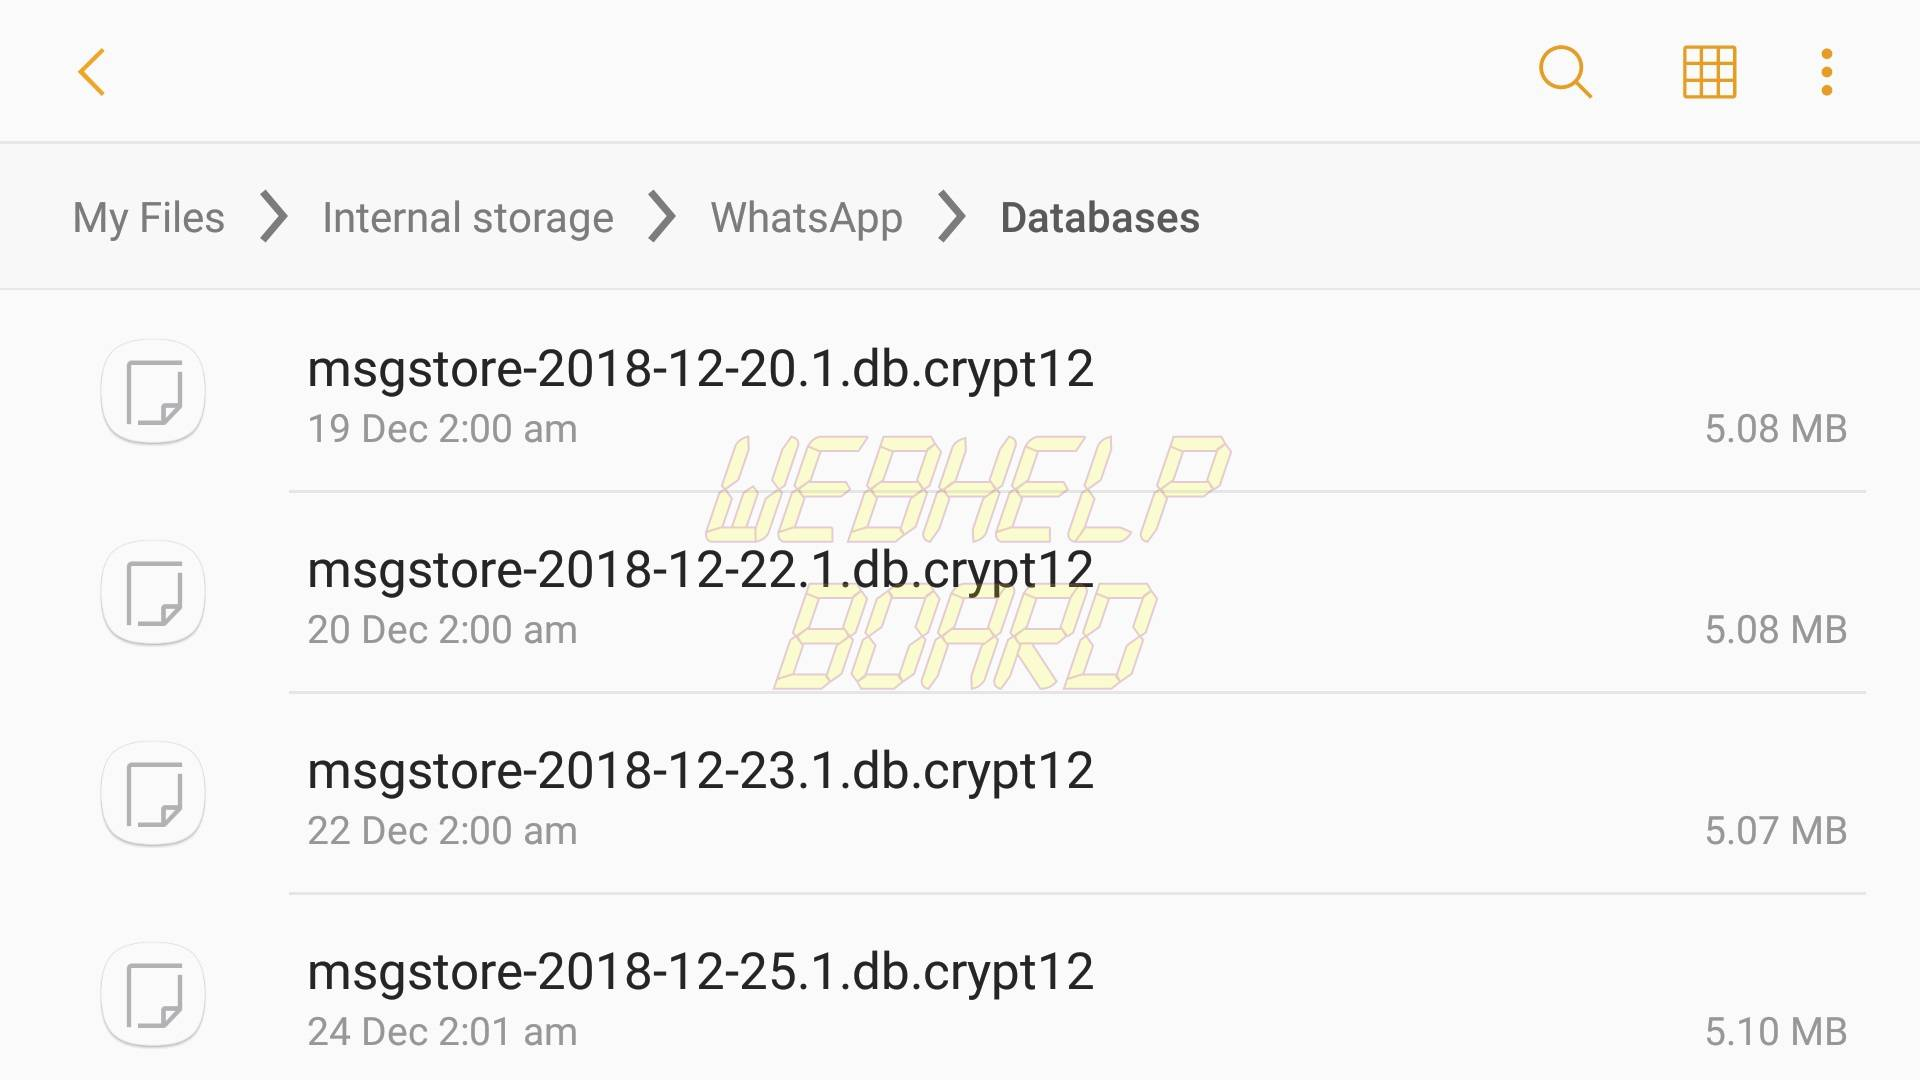 how to recover deleted messages in whatsapp from local backup